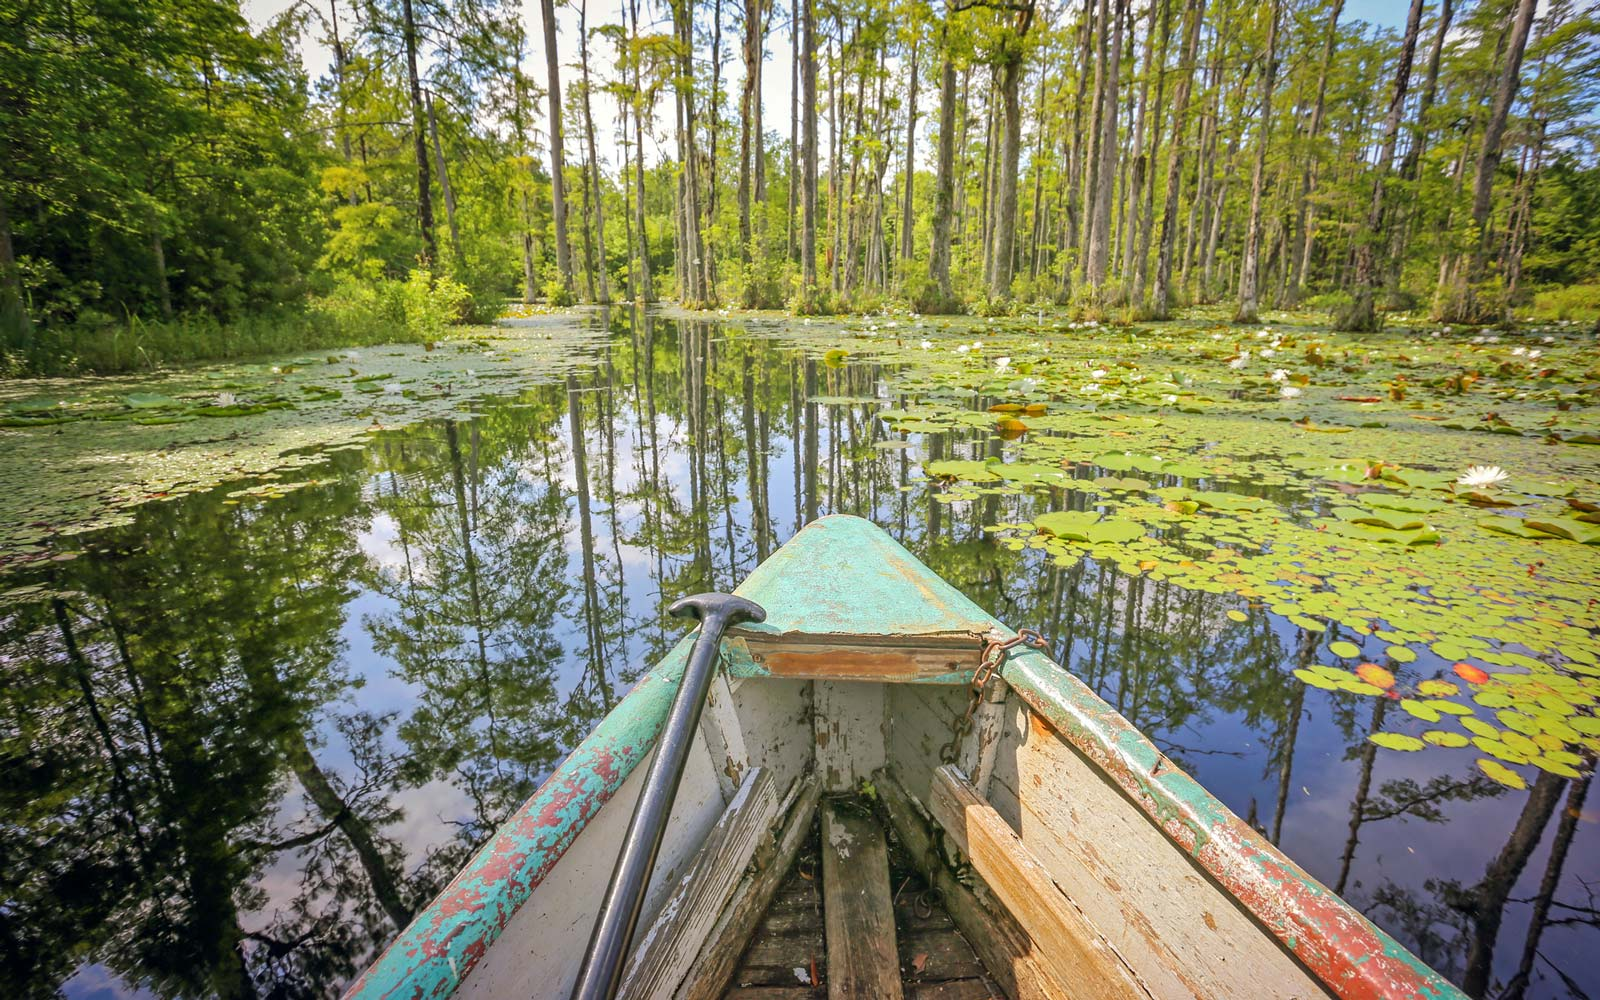 Boating in The lowcountry.